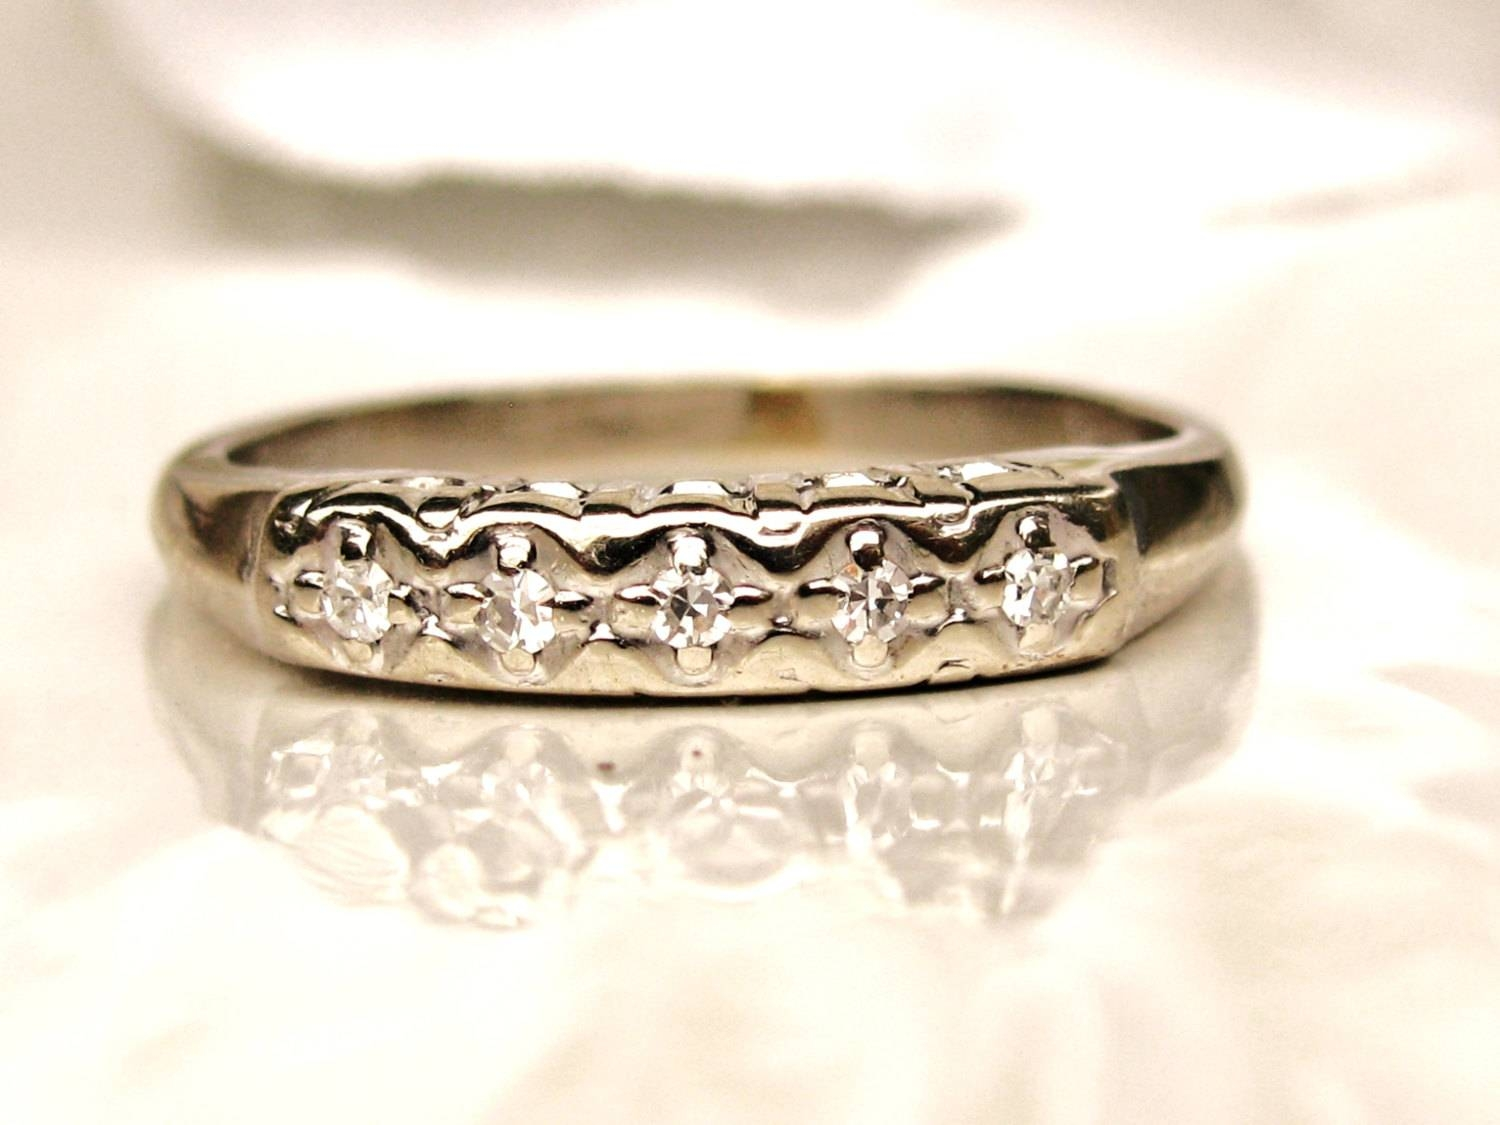 Vintage Keepsake Wedding Ring 14k White Gold Ladies Wedding Regarding Keepsake Wedding Bands (View 9 of 15)